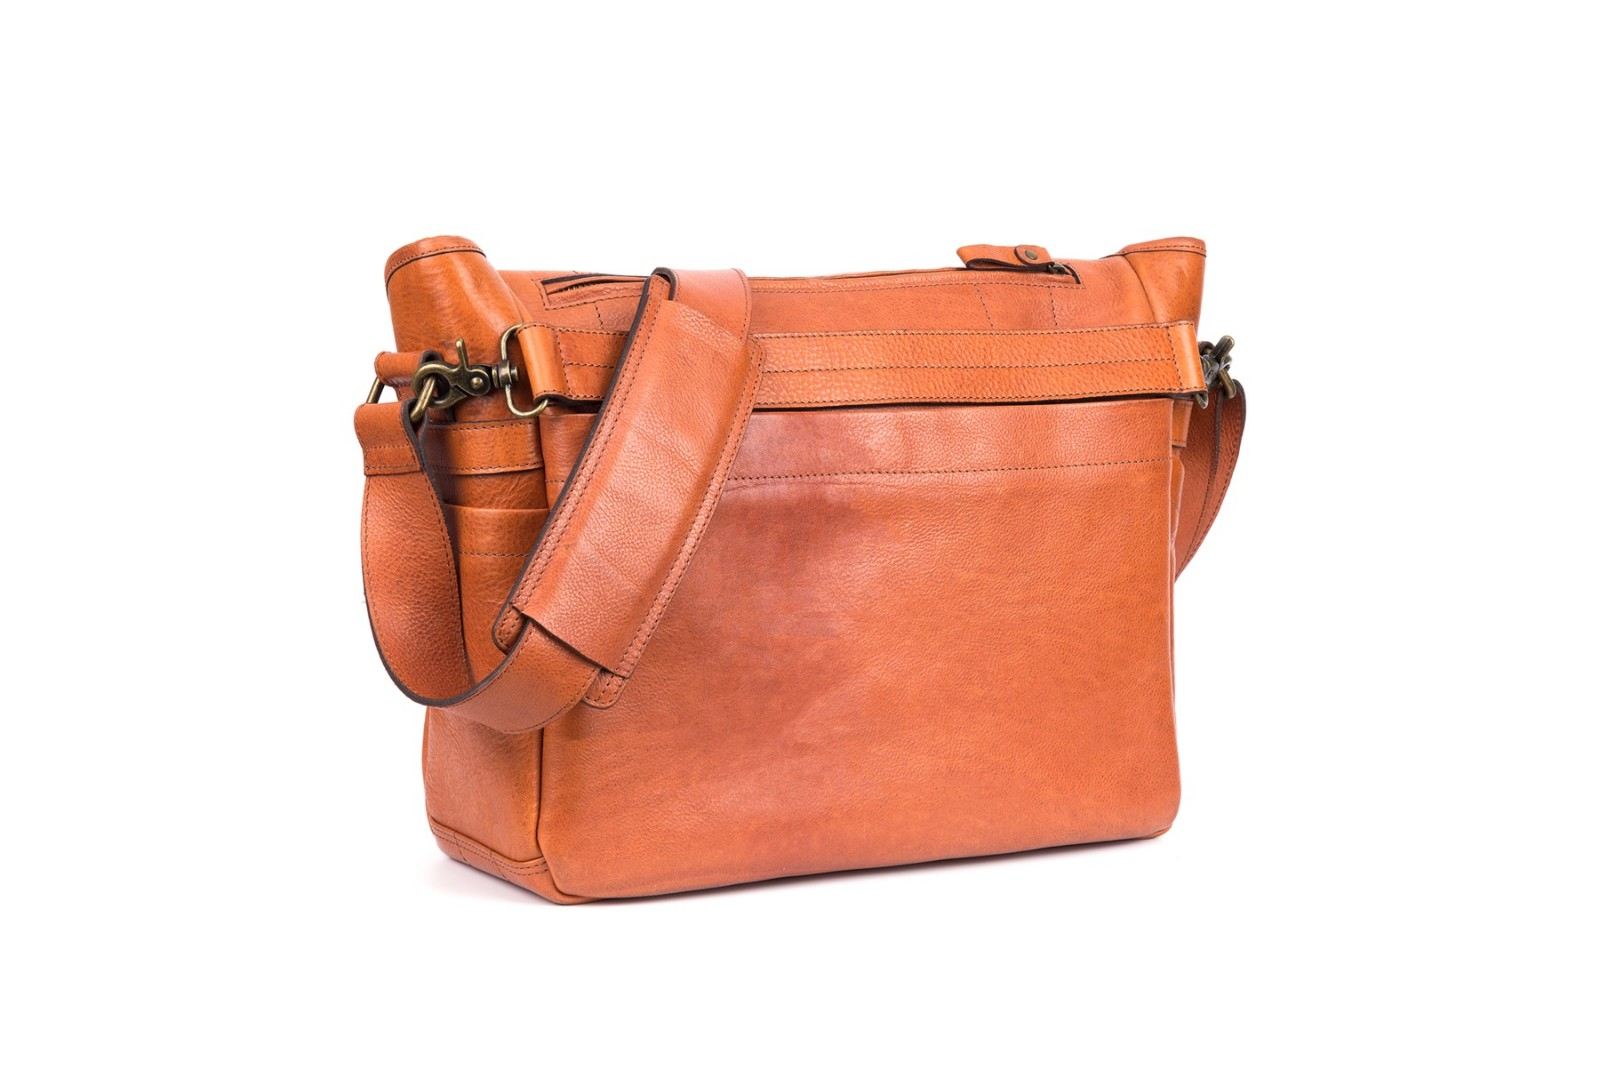 GF bags genuine leather best messenger bags supplier for girls-3